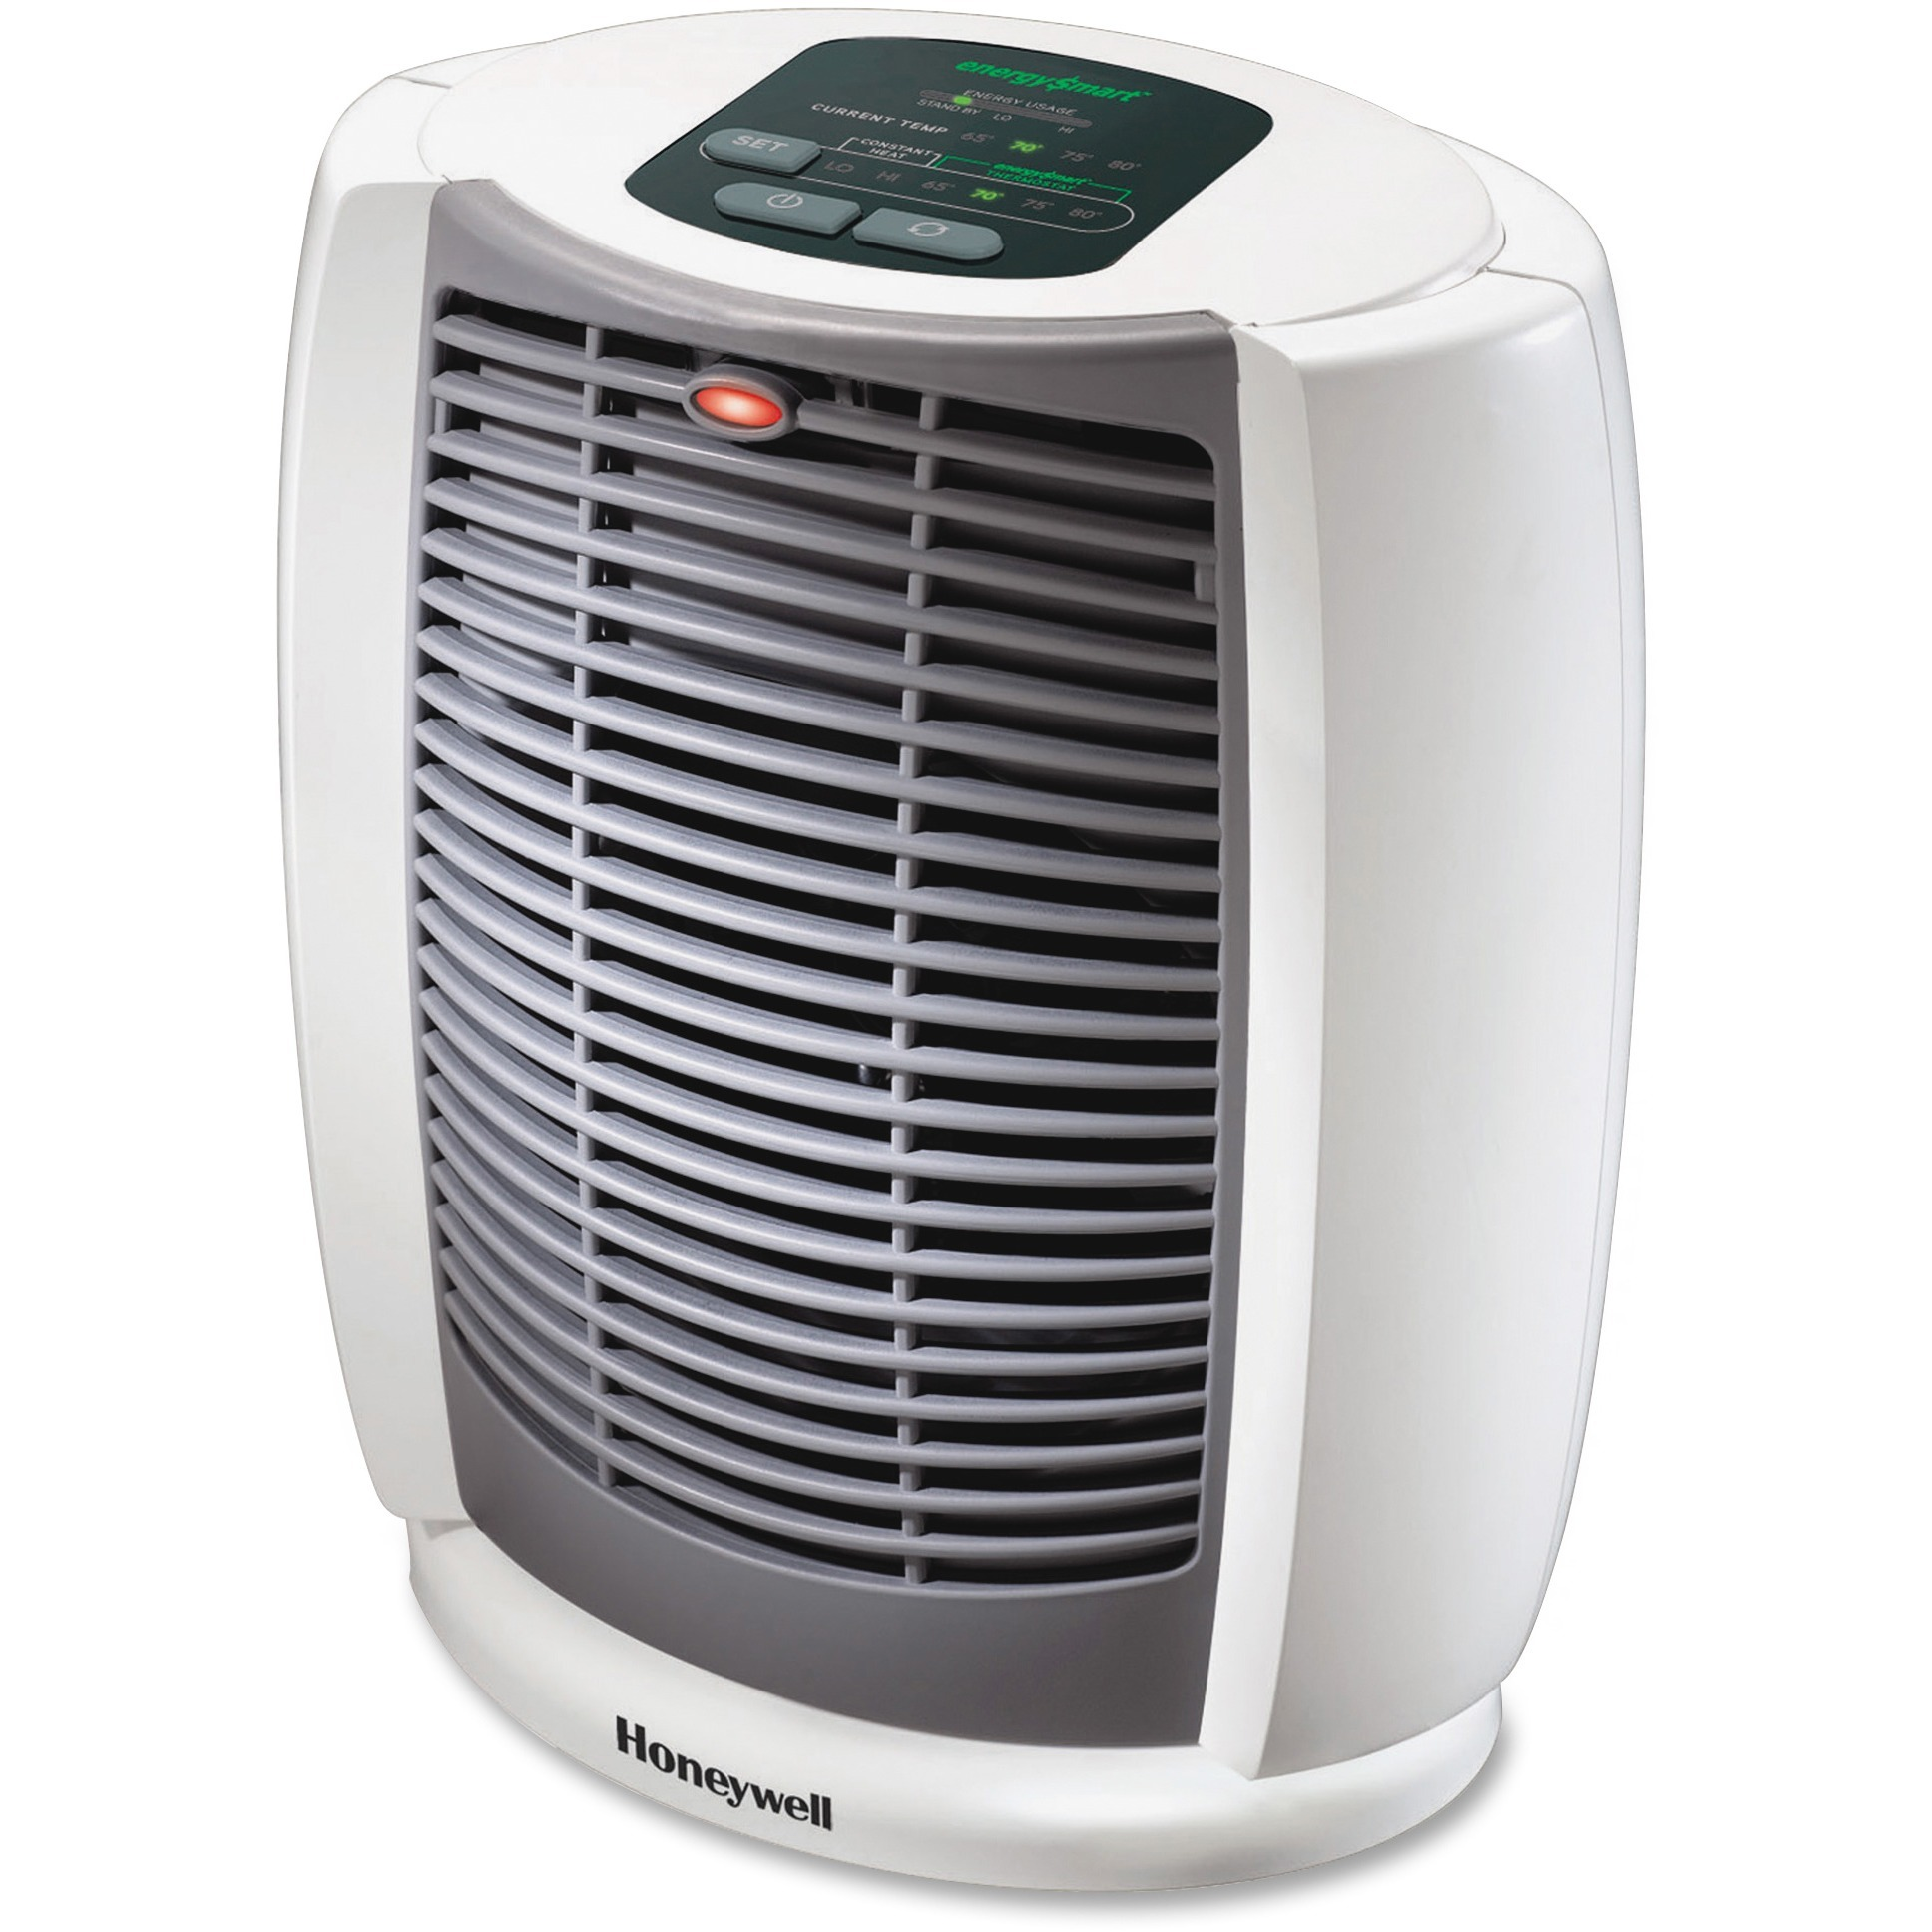 Honeywell EnergySmart Cool Touch Heater, White, HZ-7304U